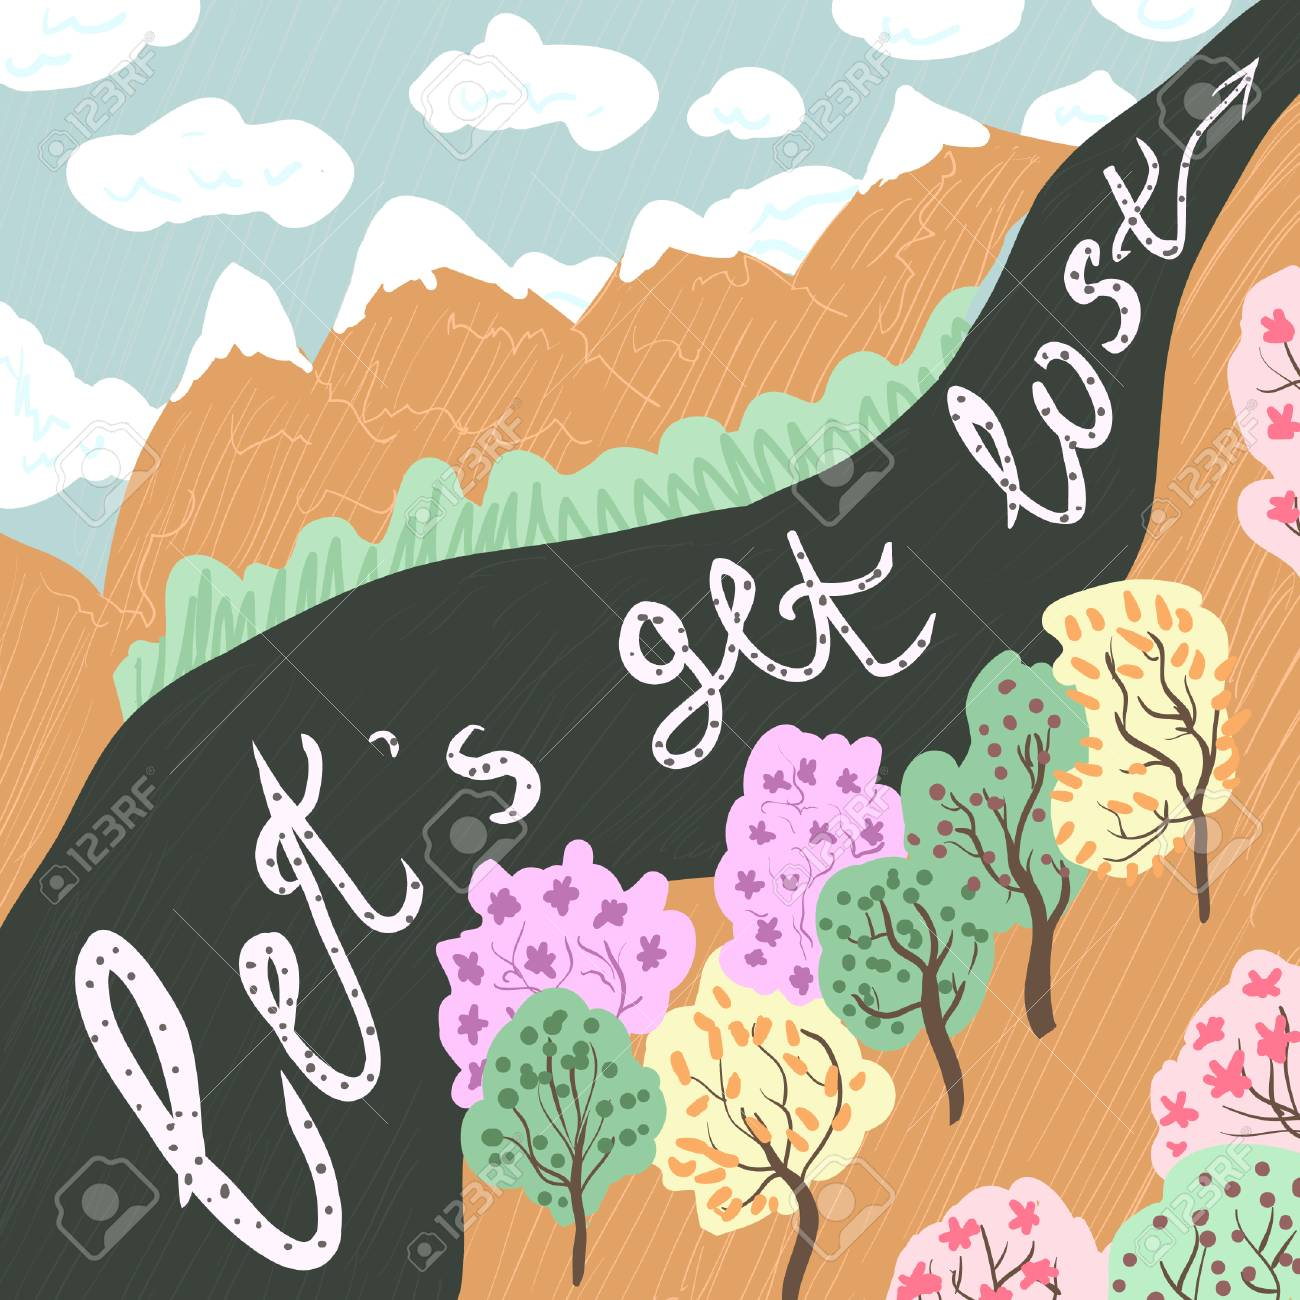 Let's get Lost. Vector hand drawn lettering art. Typography poster with calligraphic quote, mountains, trees, clouds, forest. Prints or greeting cards. Motivational lettered phrase. landscape outdoor. - 102088022